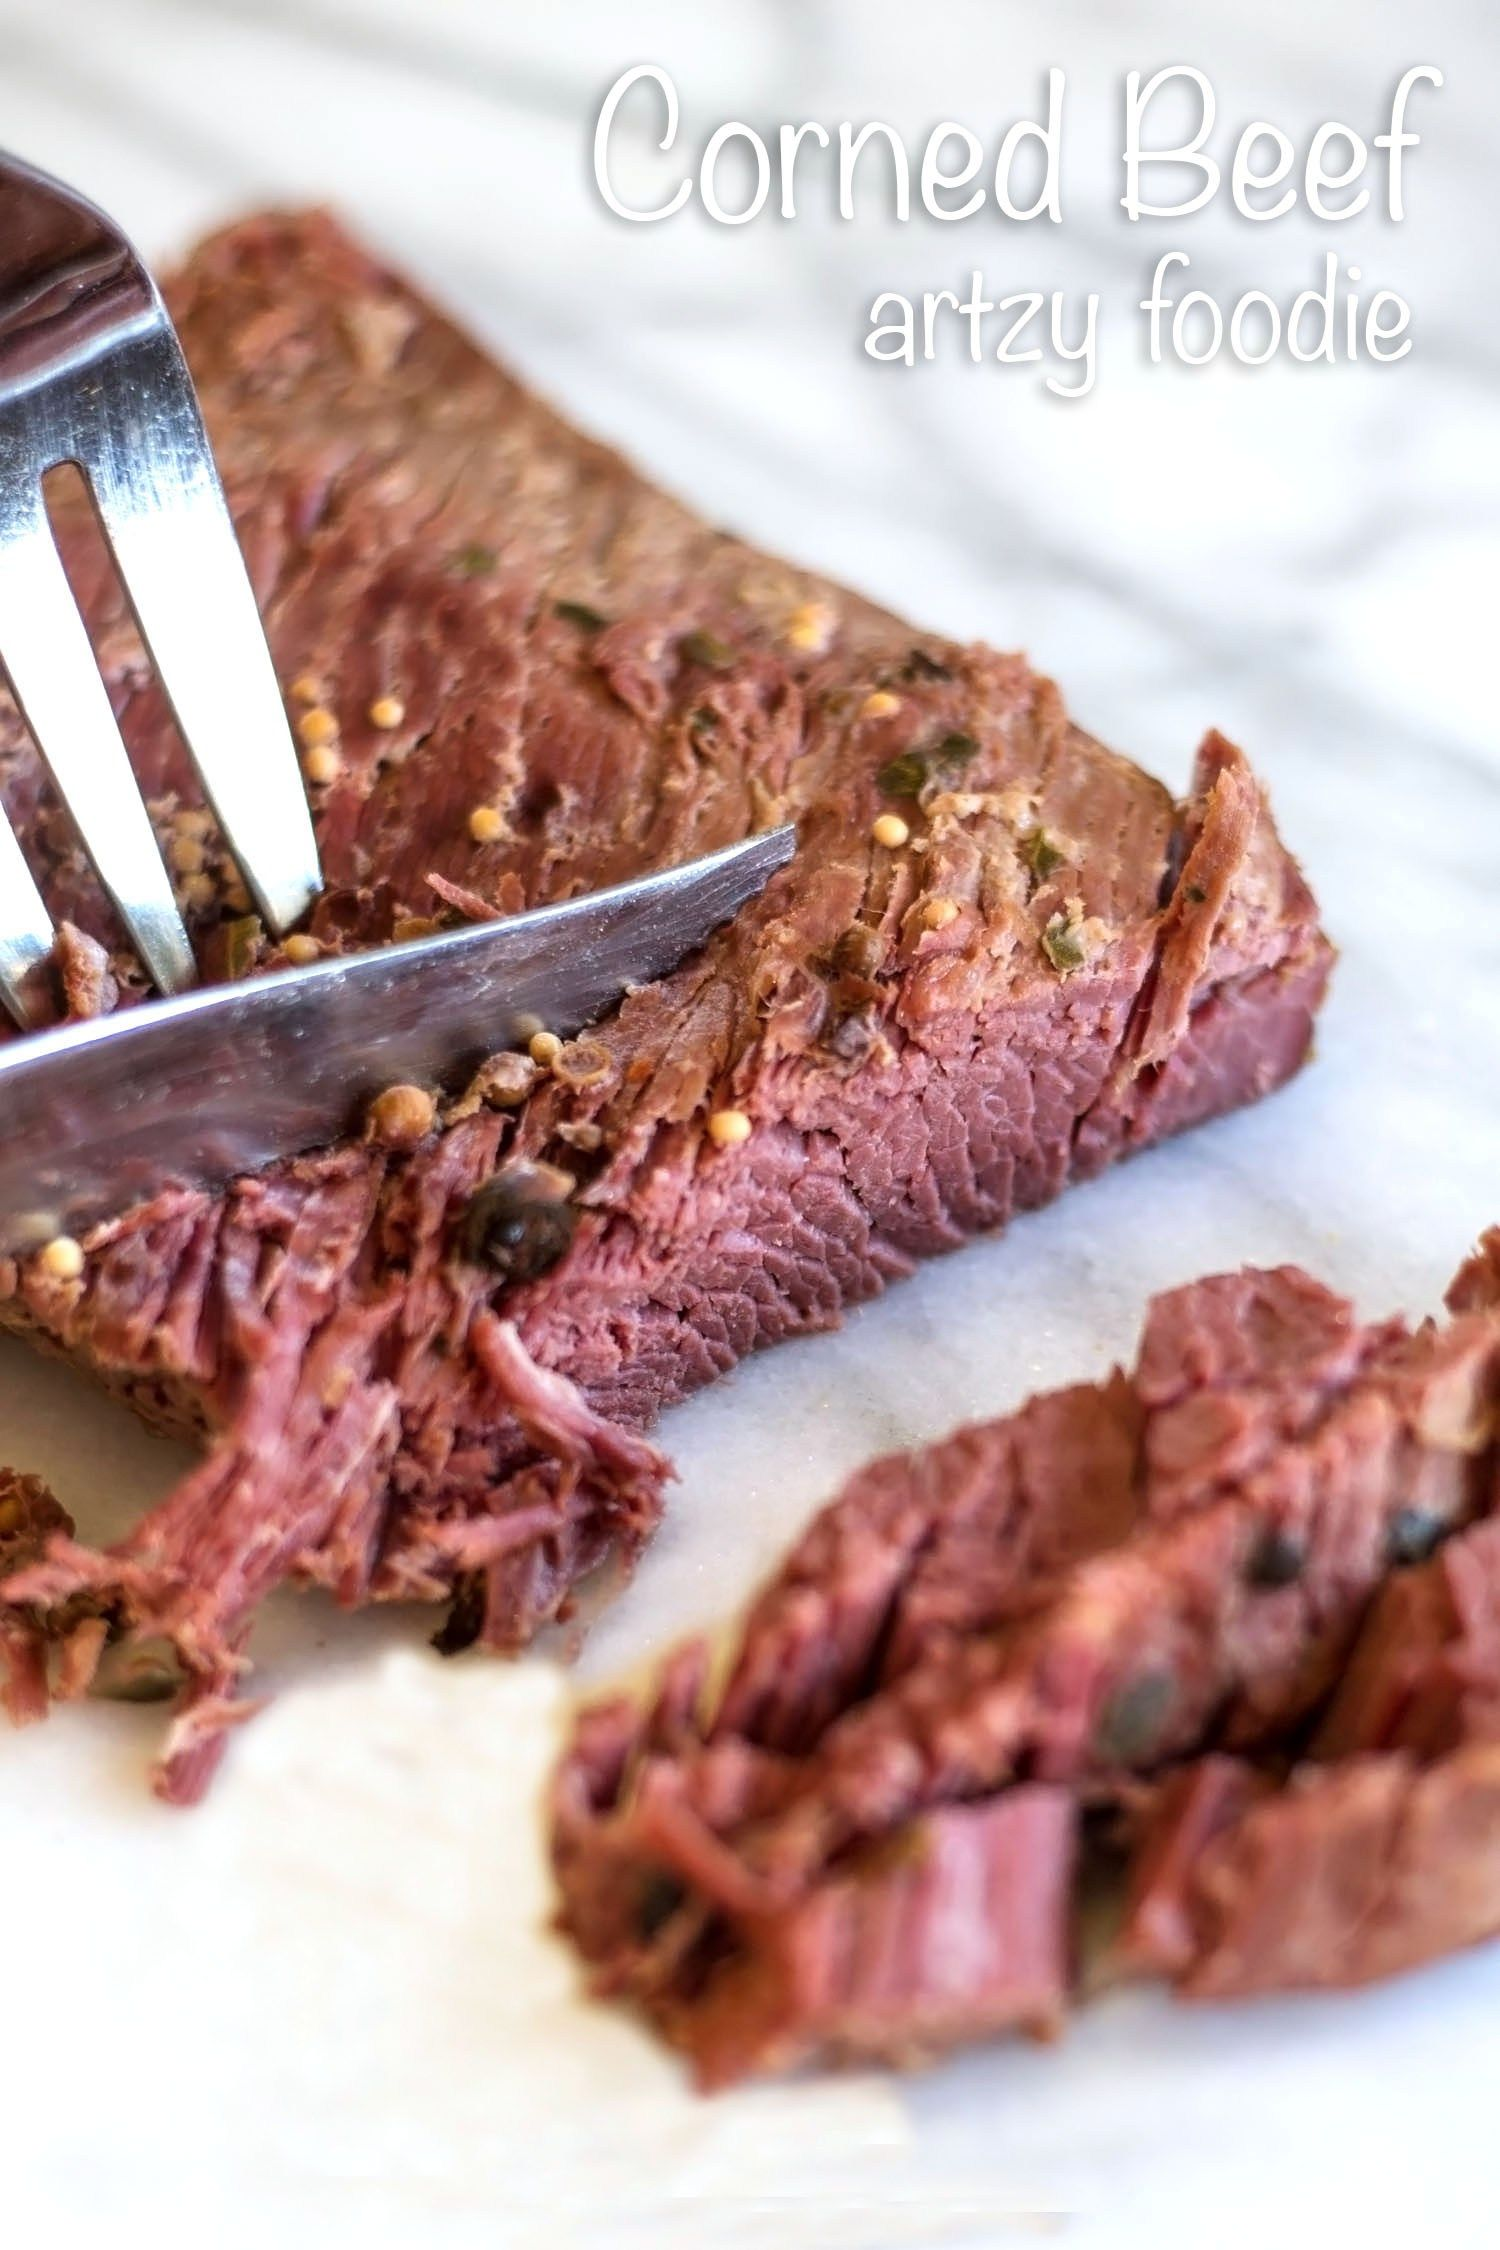 Slow Cooker Corned Beef Recipe Slow Cooker Corned Beef Corned Beef Recipes Slow Cooker Beef Brisket Recipes